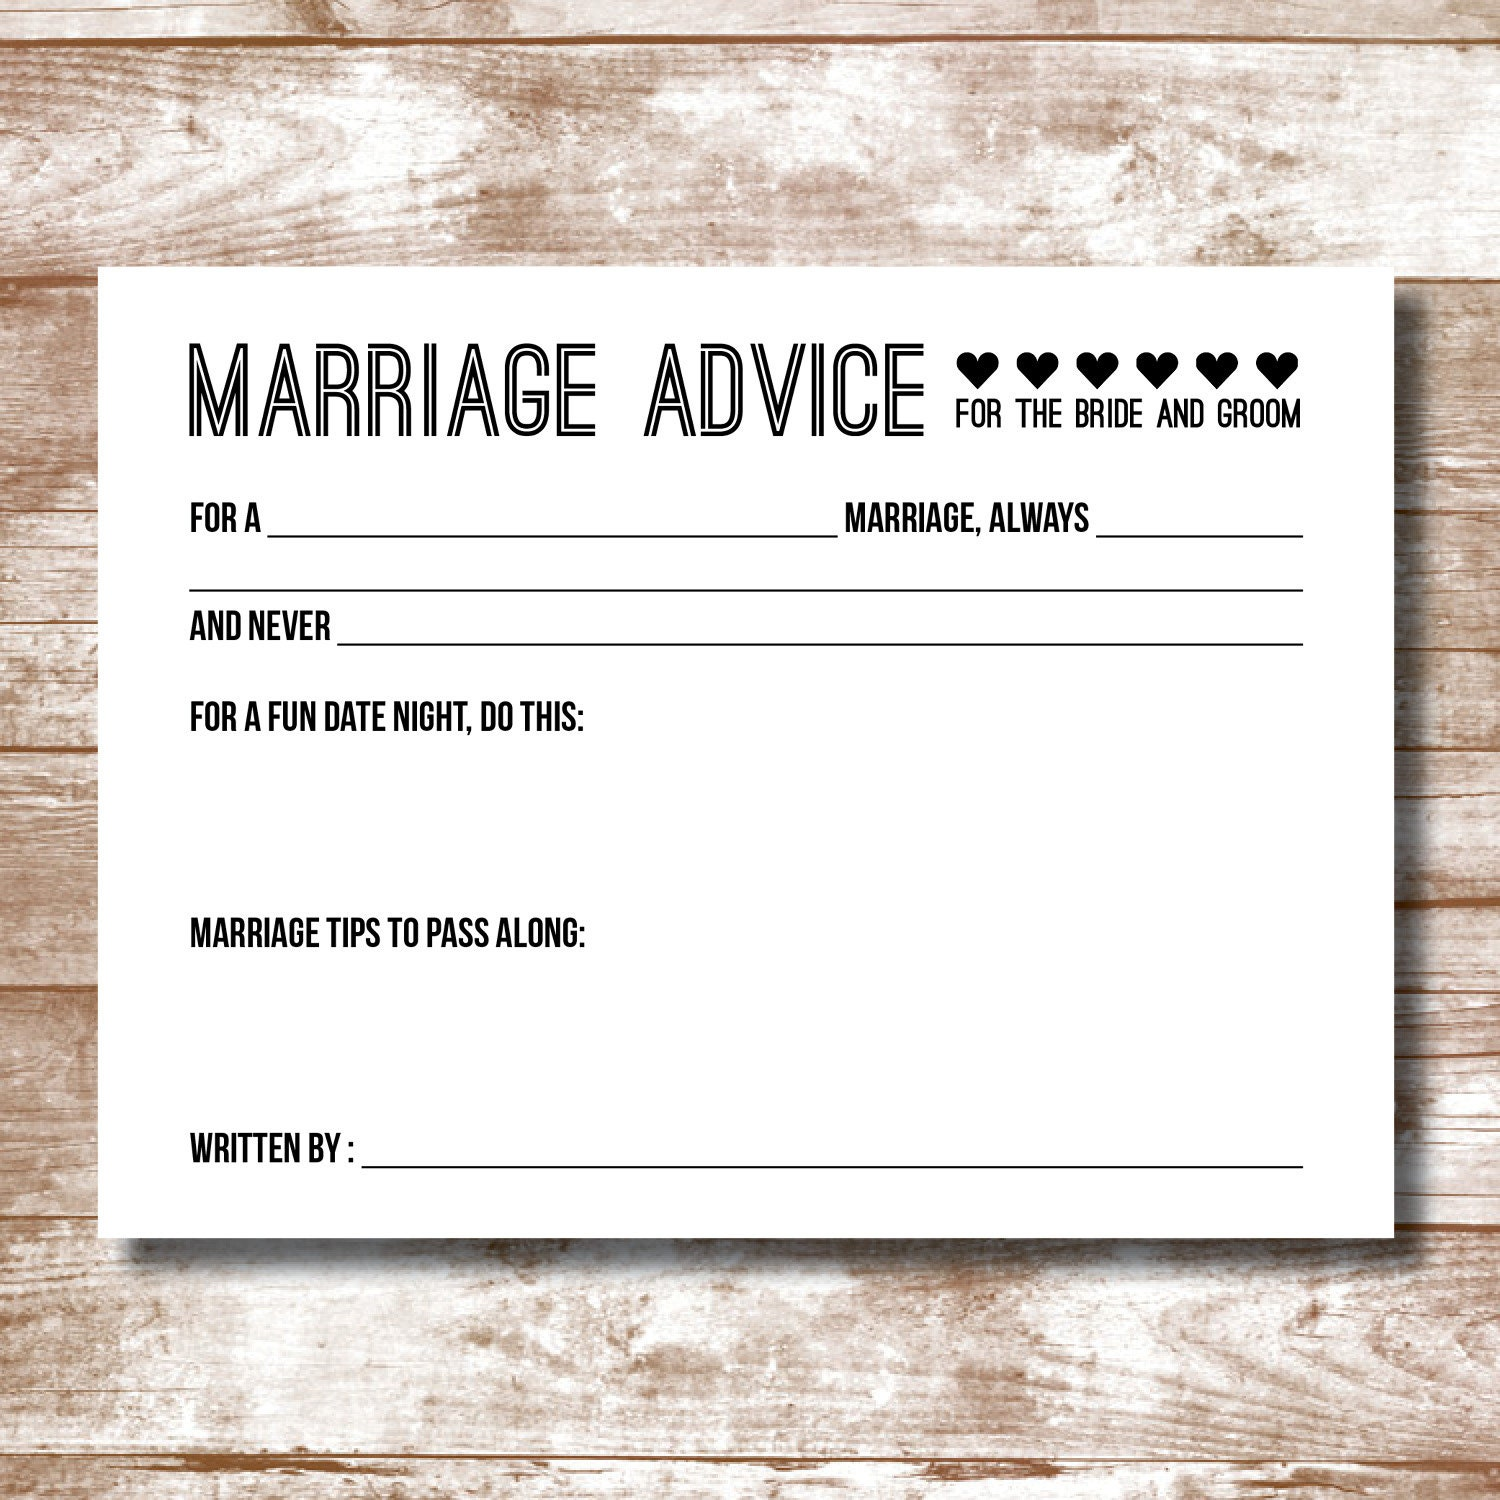 Wedding Advice: Marriage Advice Cards Packs Of 15-200